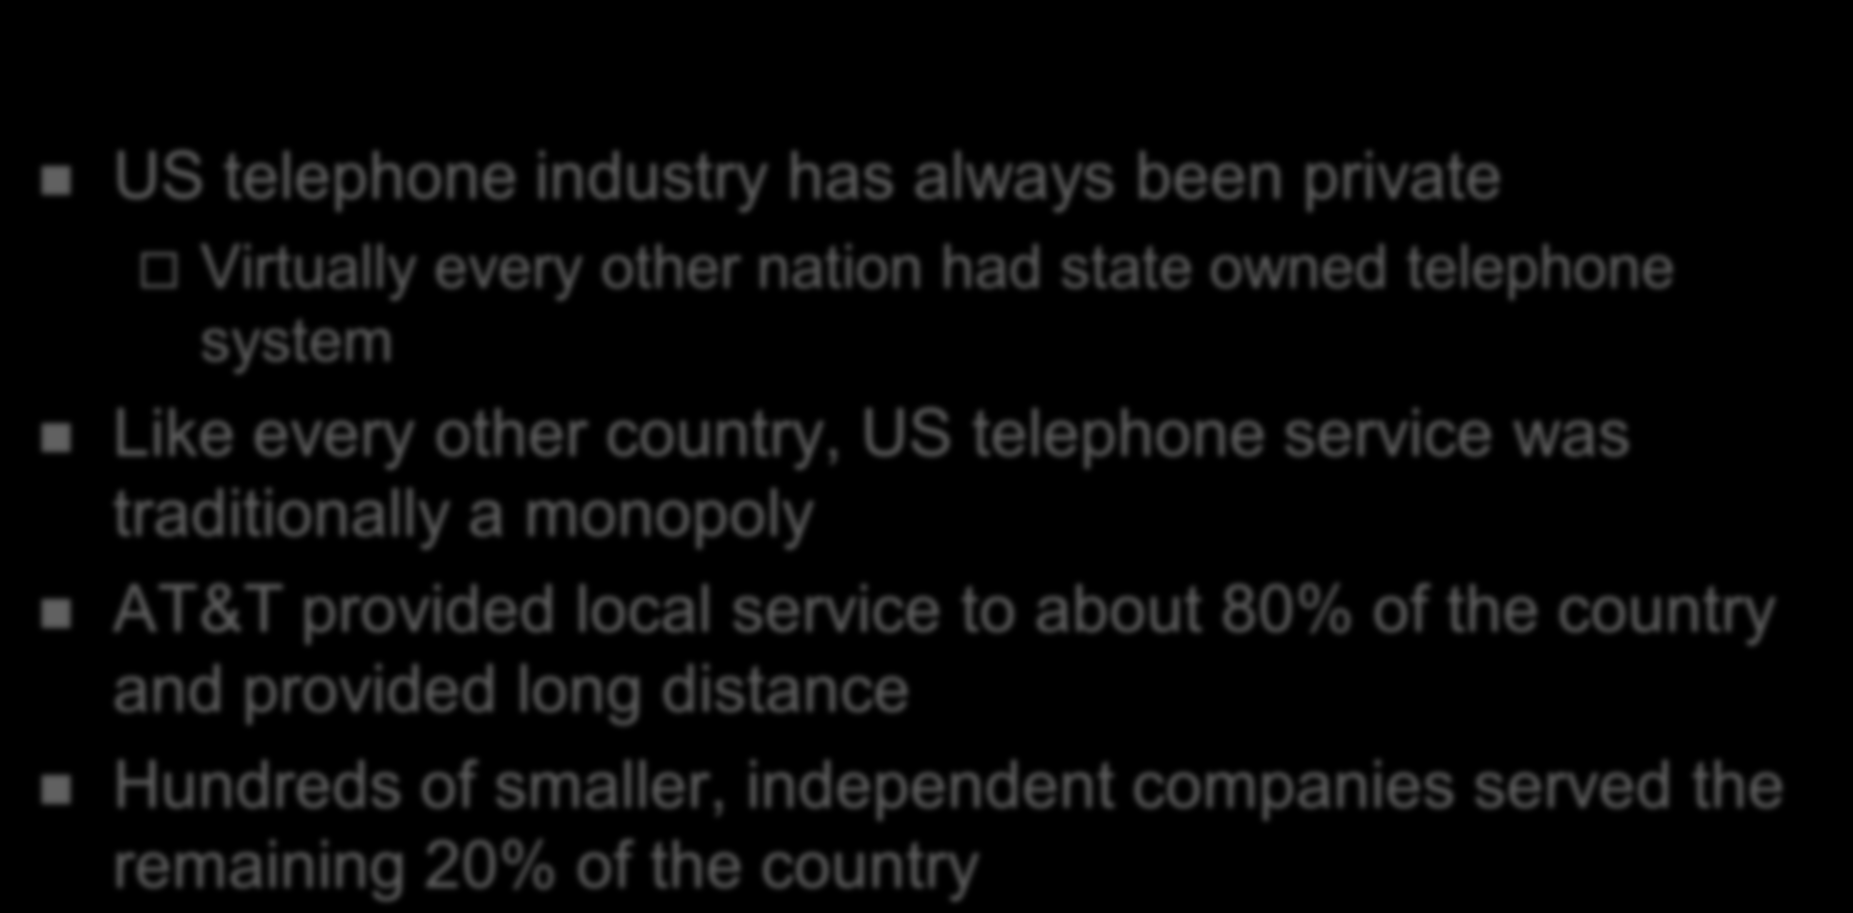 History of Universal Service in the USA US telephone industry has always been private Virtually every other nation had state owned telephone system Like every other country, US telephone service